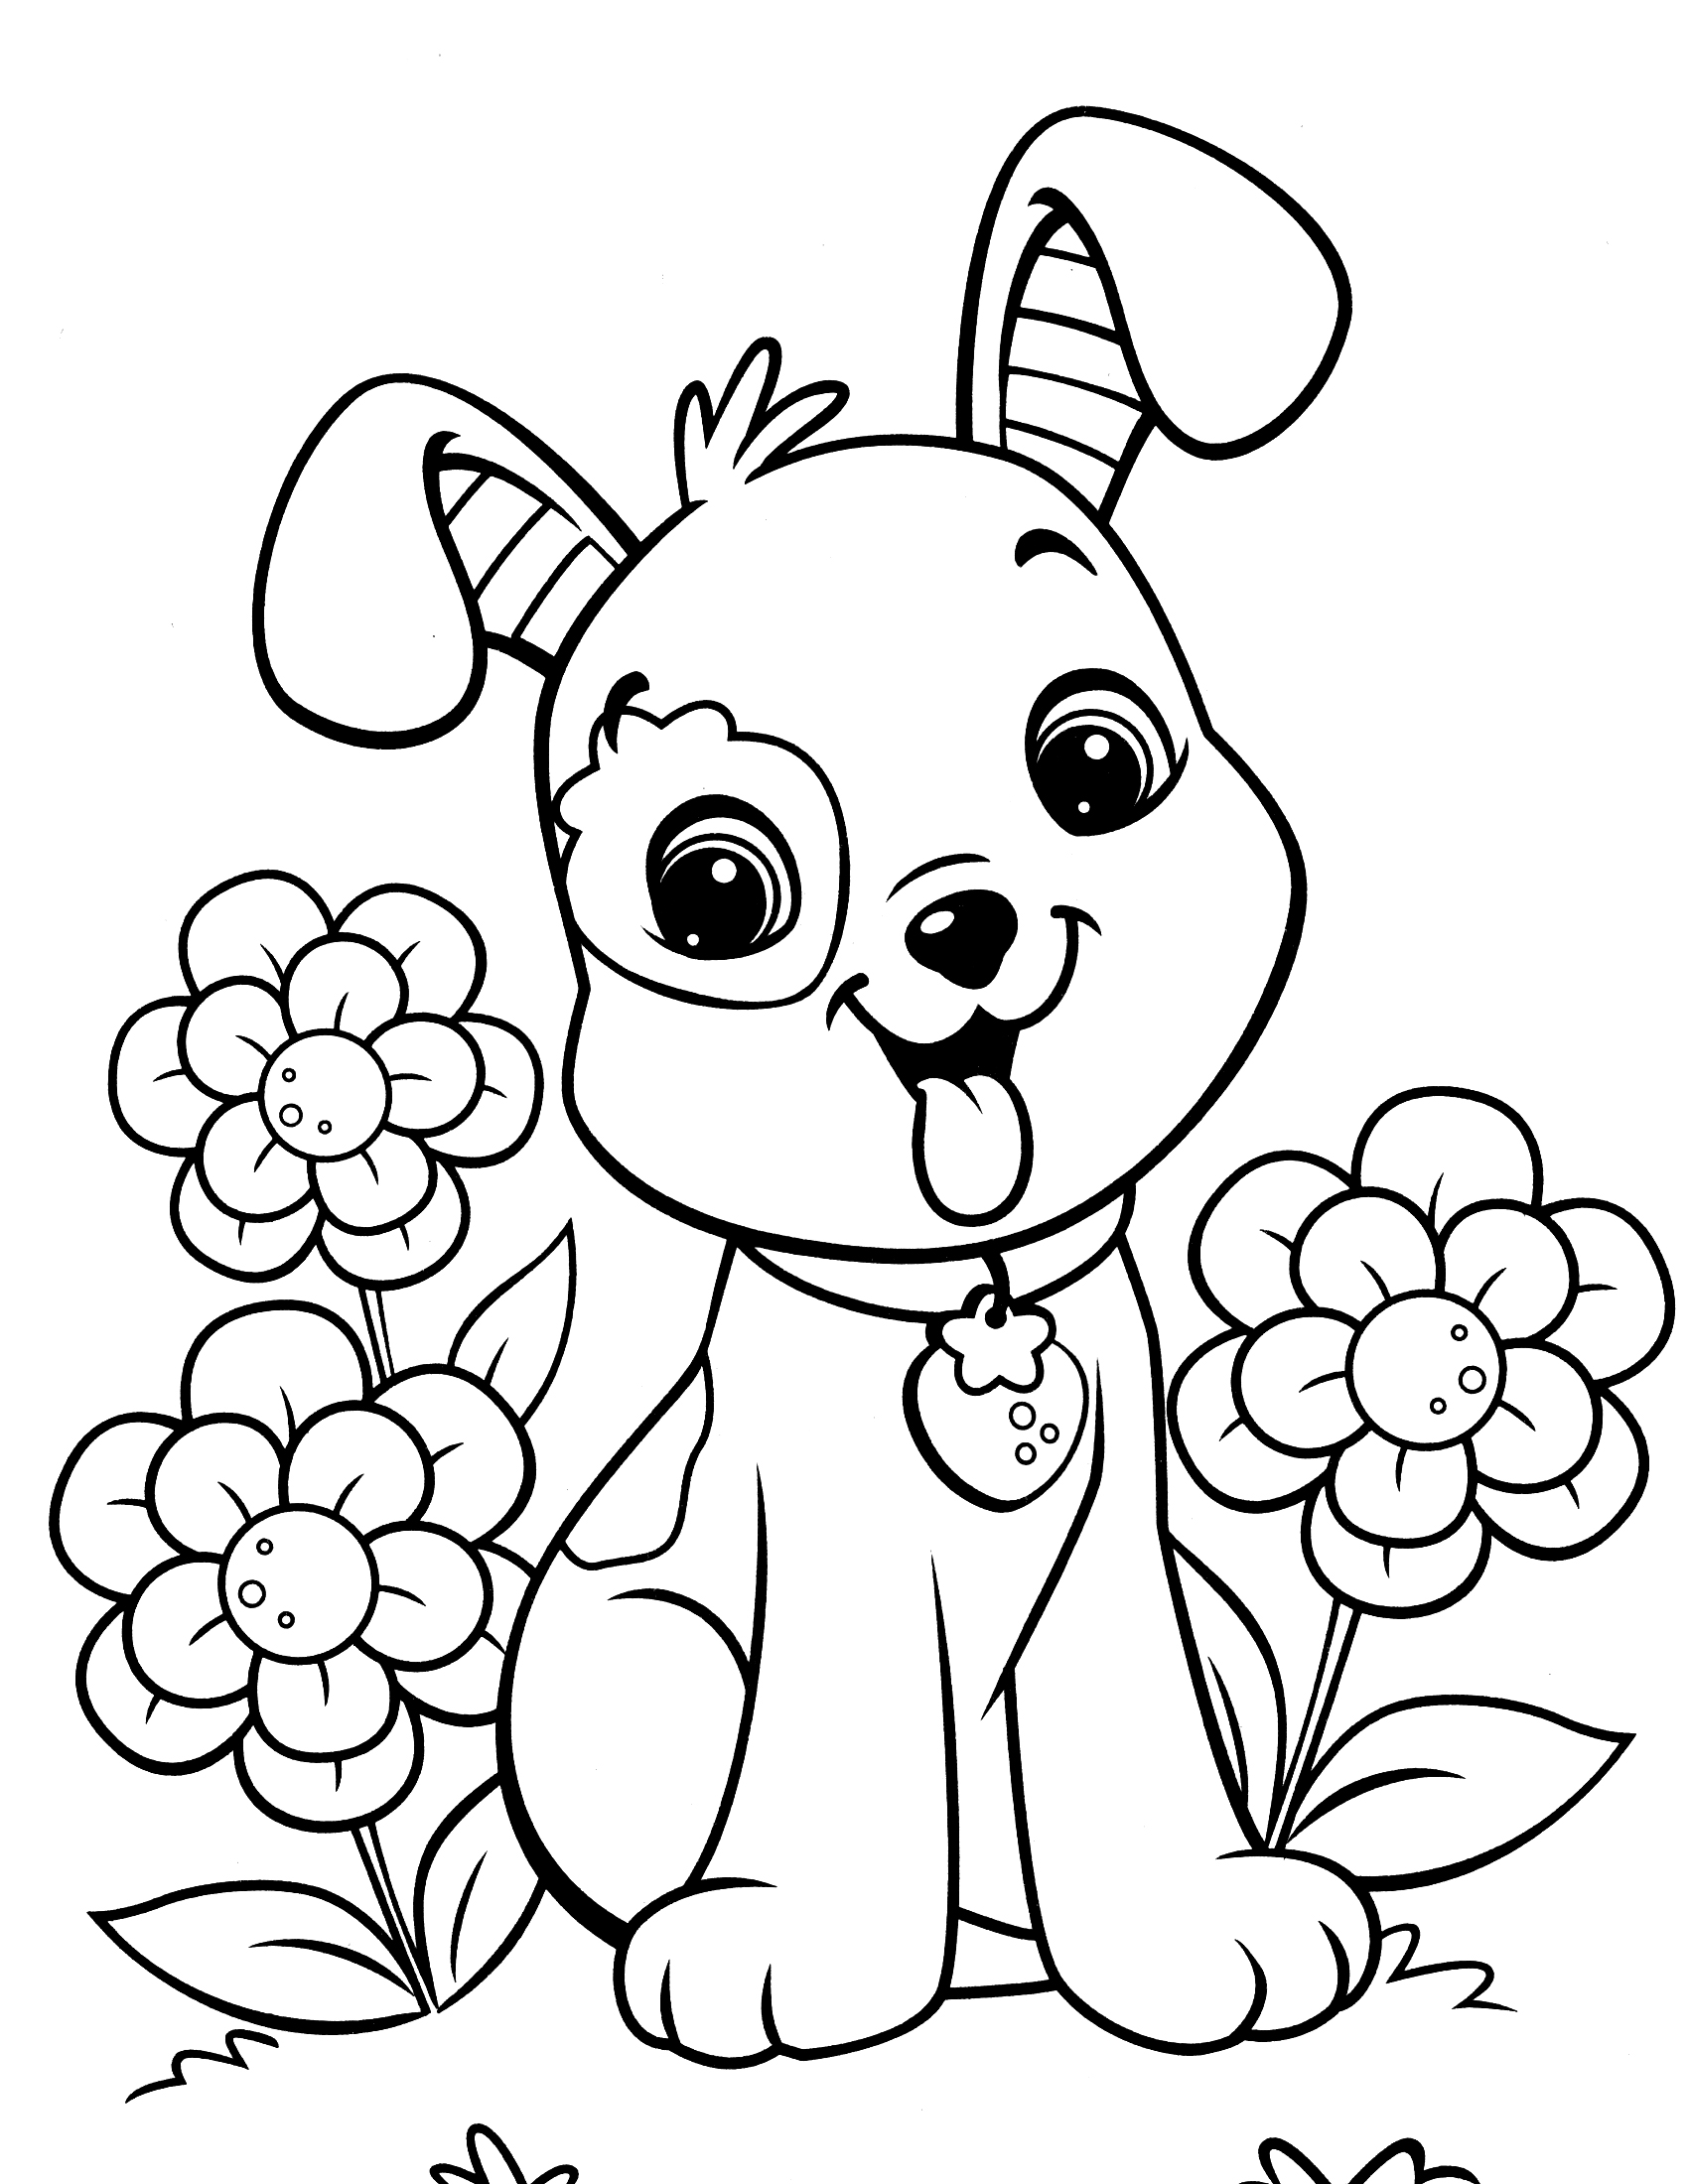 dog colouring in cute dog coloring pages to download and print for free dog colouring in